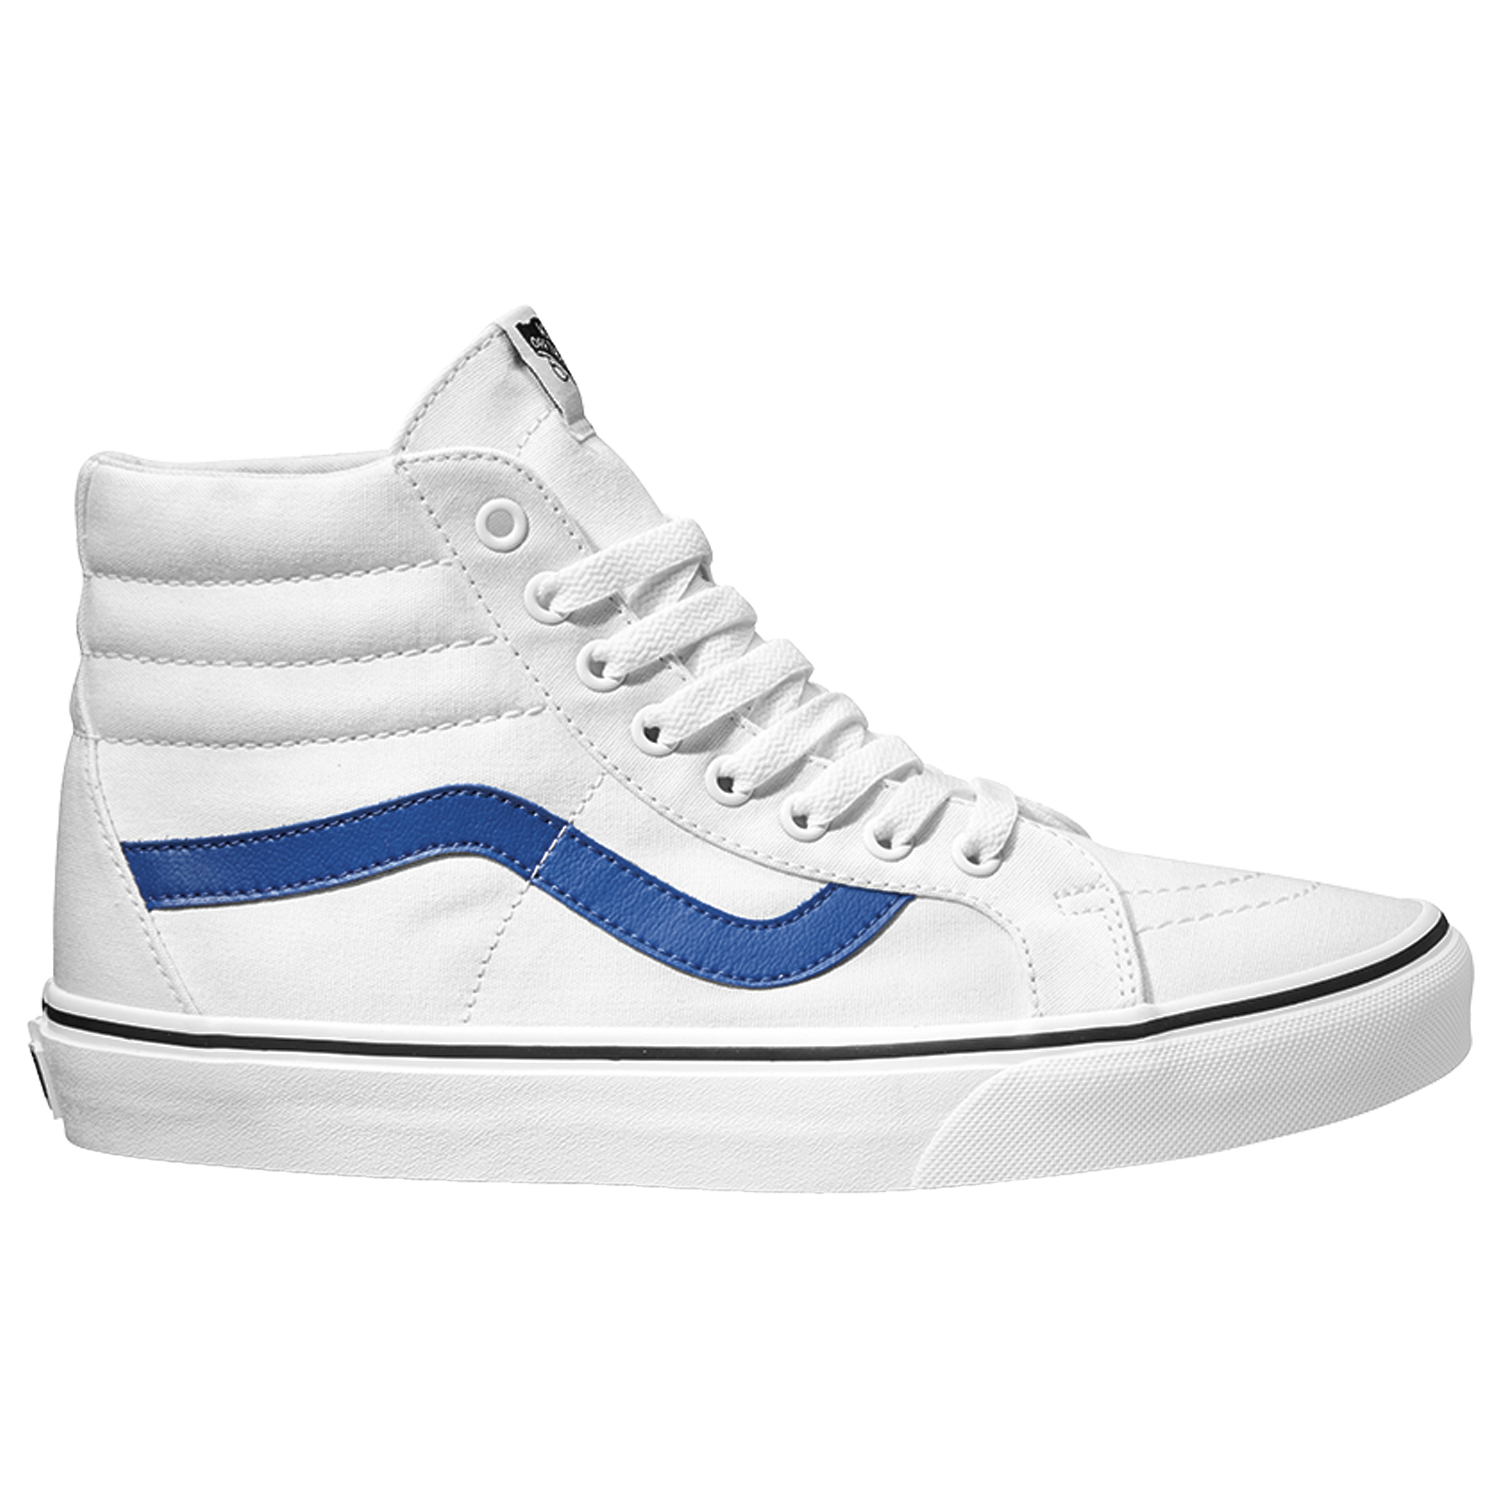 vans-sk8-hi-reis-canvas-true-white-true-blue-139-90